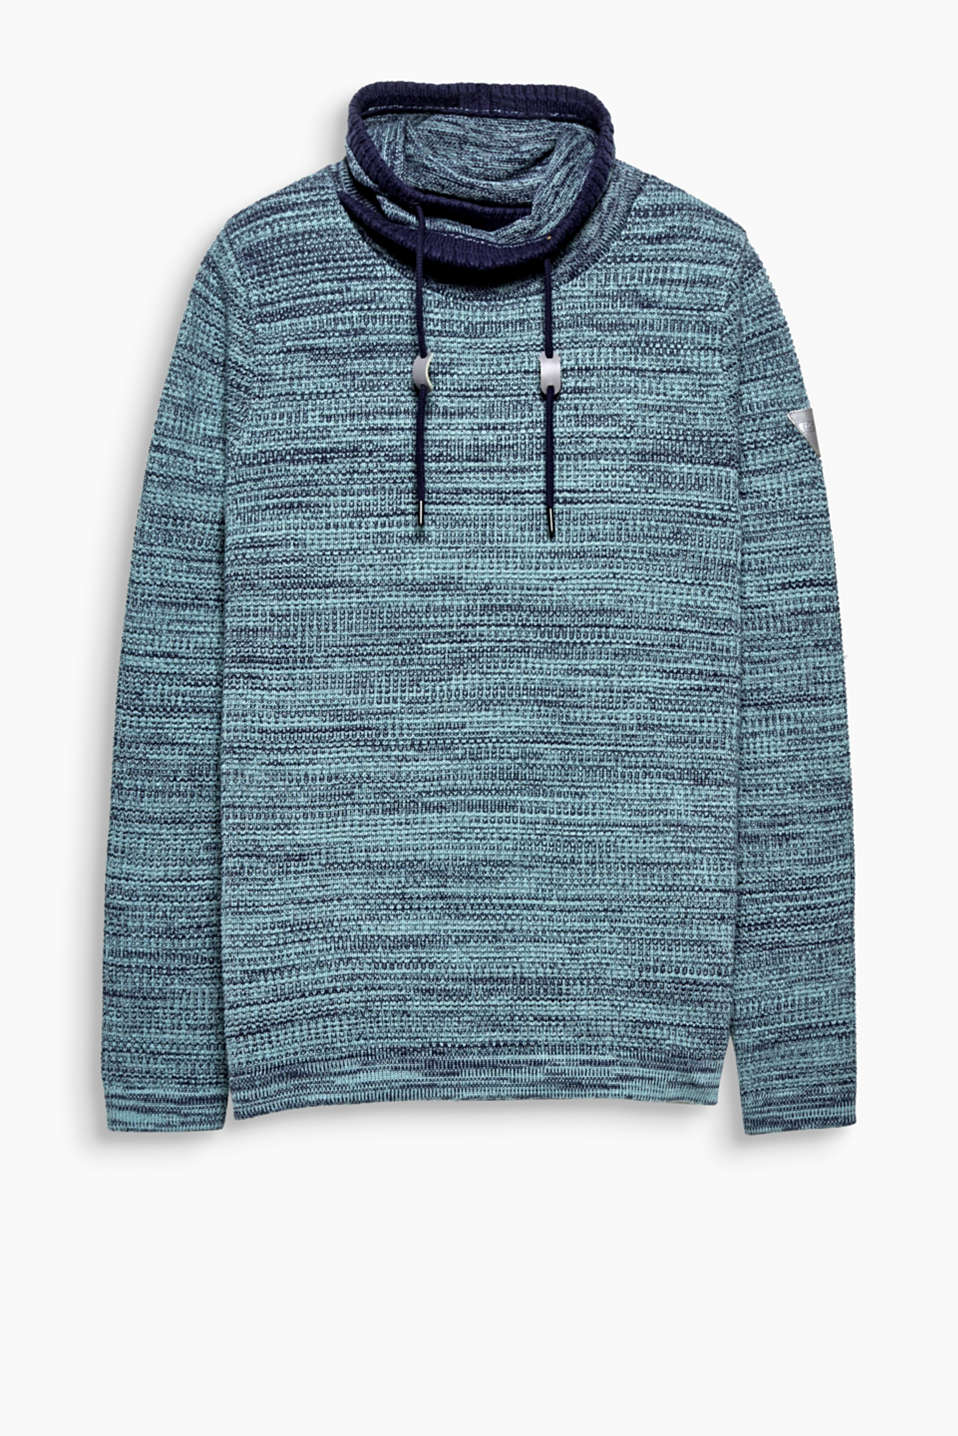 In a melange knit with a cosy shawl collar with drawstring: this jumper is a casual highlight